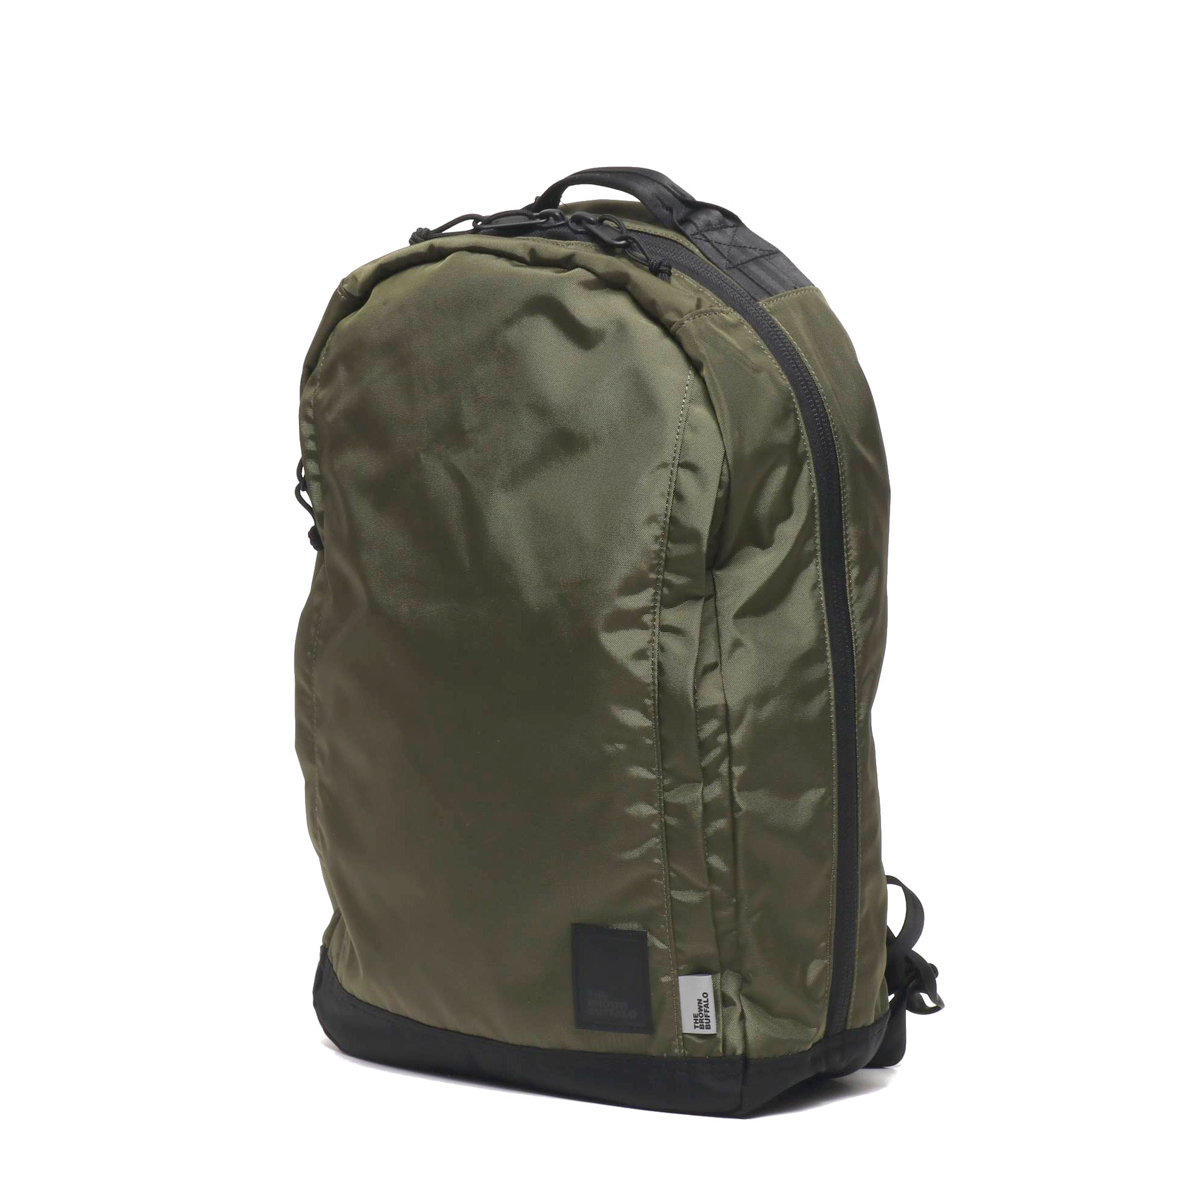 THE BROWN BUFFALO CONCEAL BACKPACK(OLIVE)(ザブラウンバッファロー コンシェル バックパック)【メンズ】【バックパック】【19SP-I】